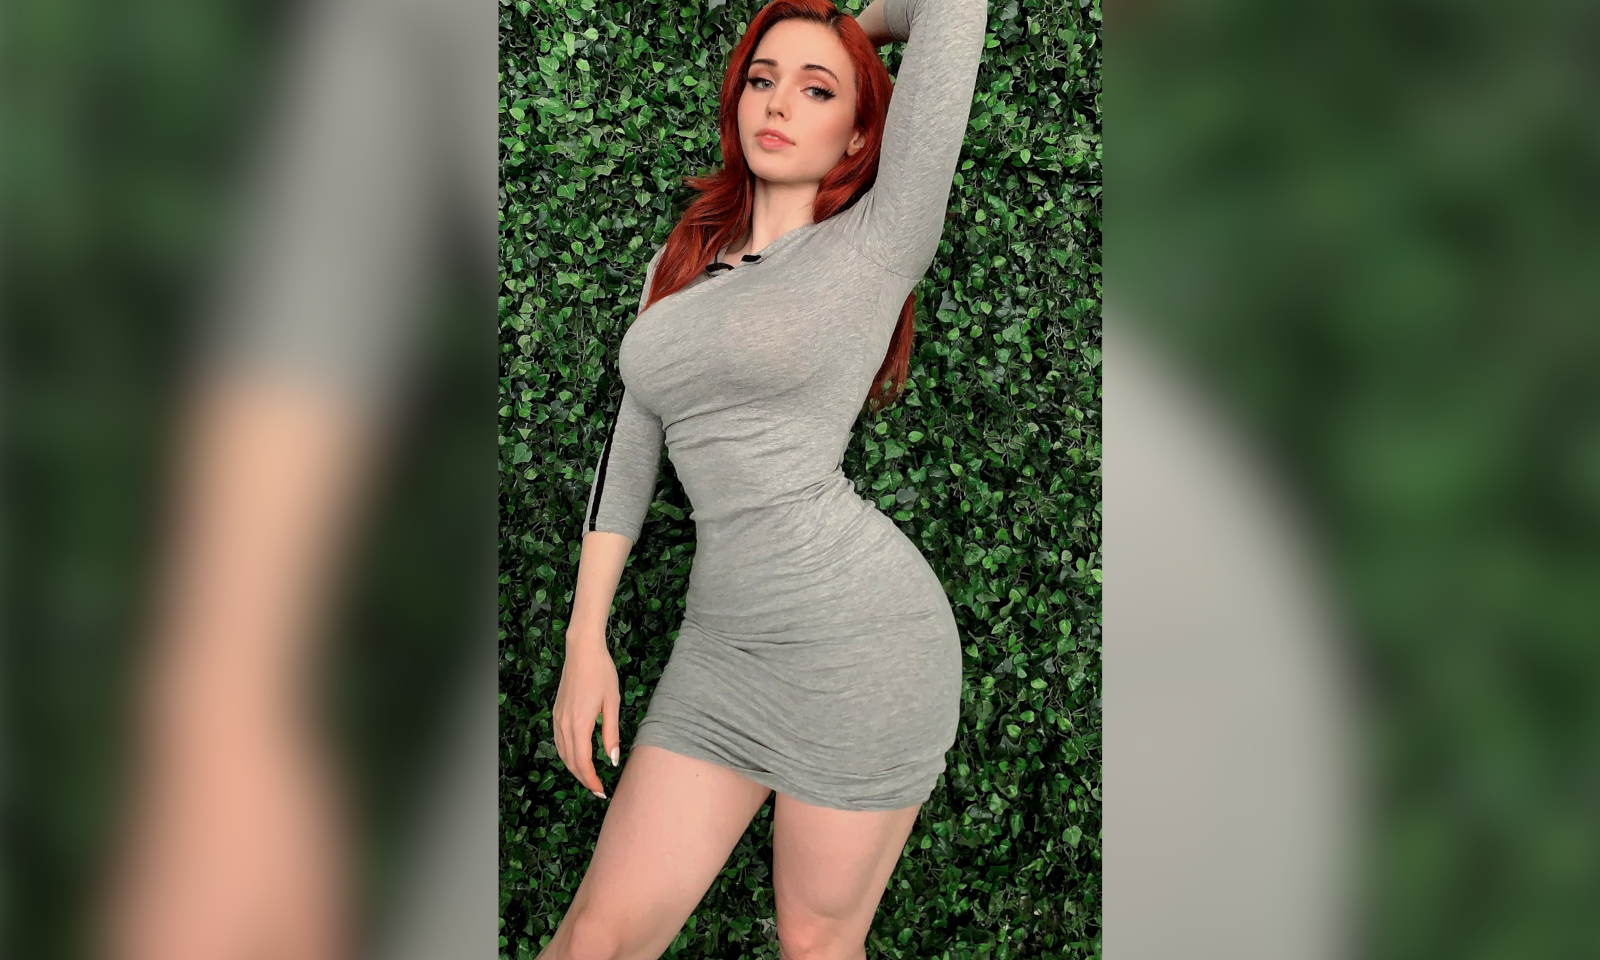 Amourath Amouranth, Indiefoxxx